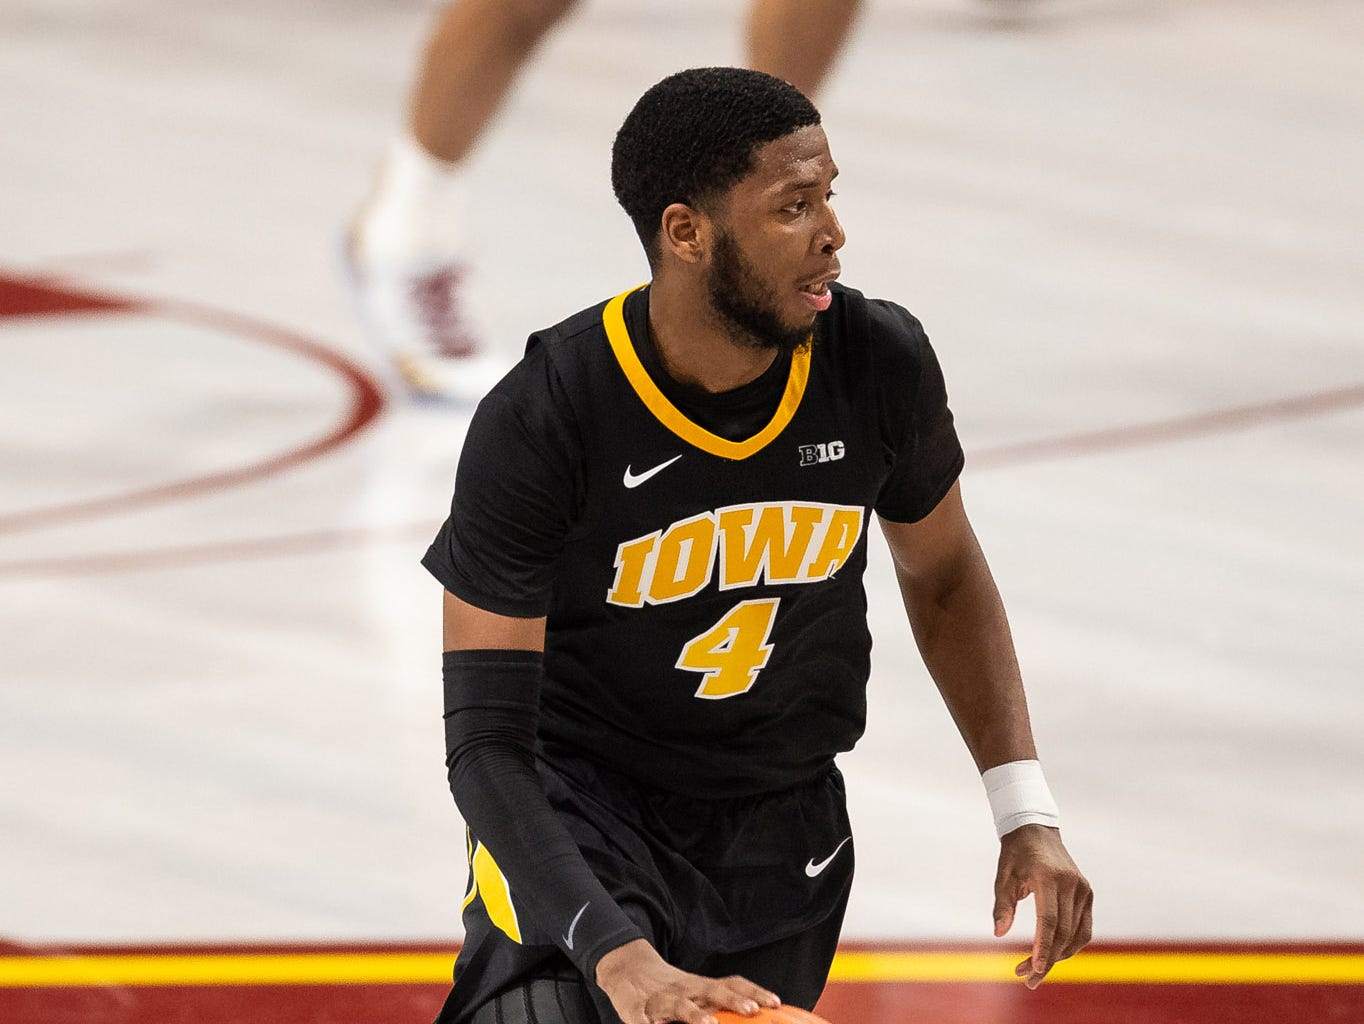 Iowa Hawkeyes guard Isaiah Moss (4) dribbles the ball during the second half against the Minnesota Gophers at Williams Arena. Mandatory Credit: Harrison Barden-USA TODAY Sports